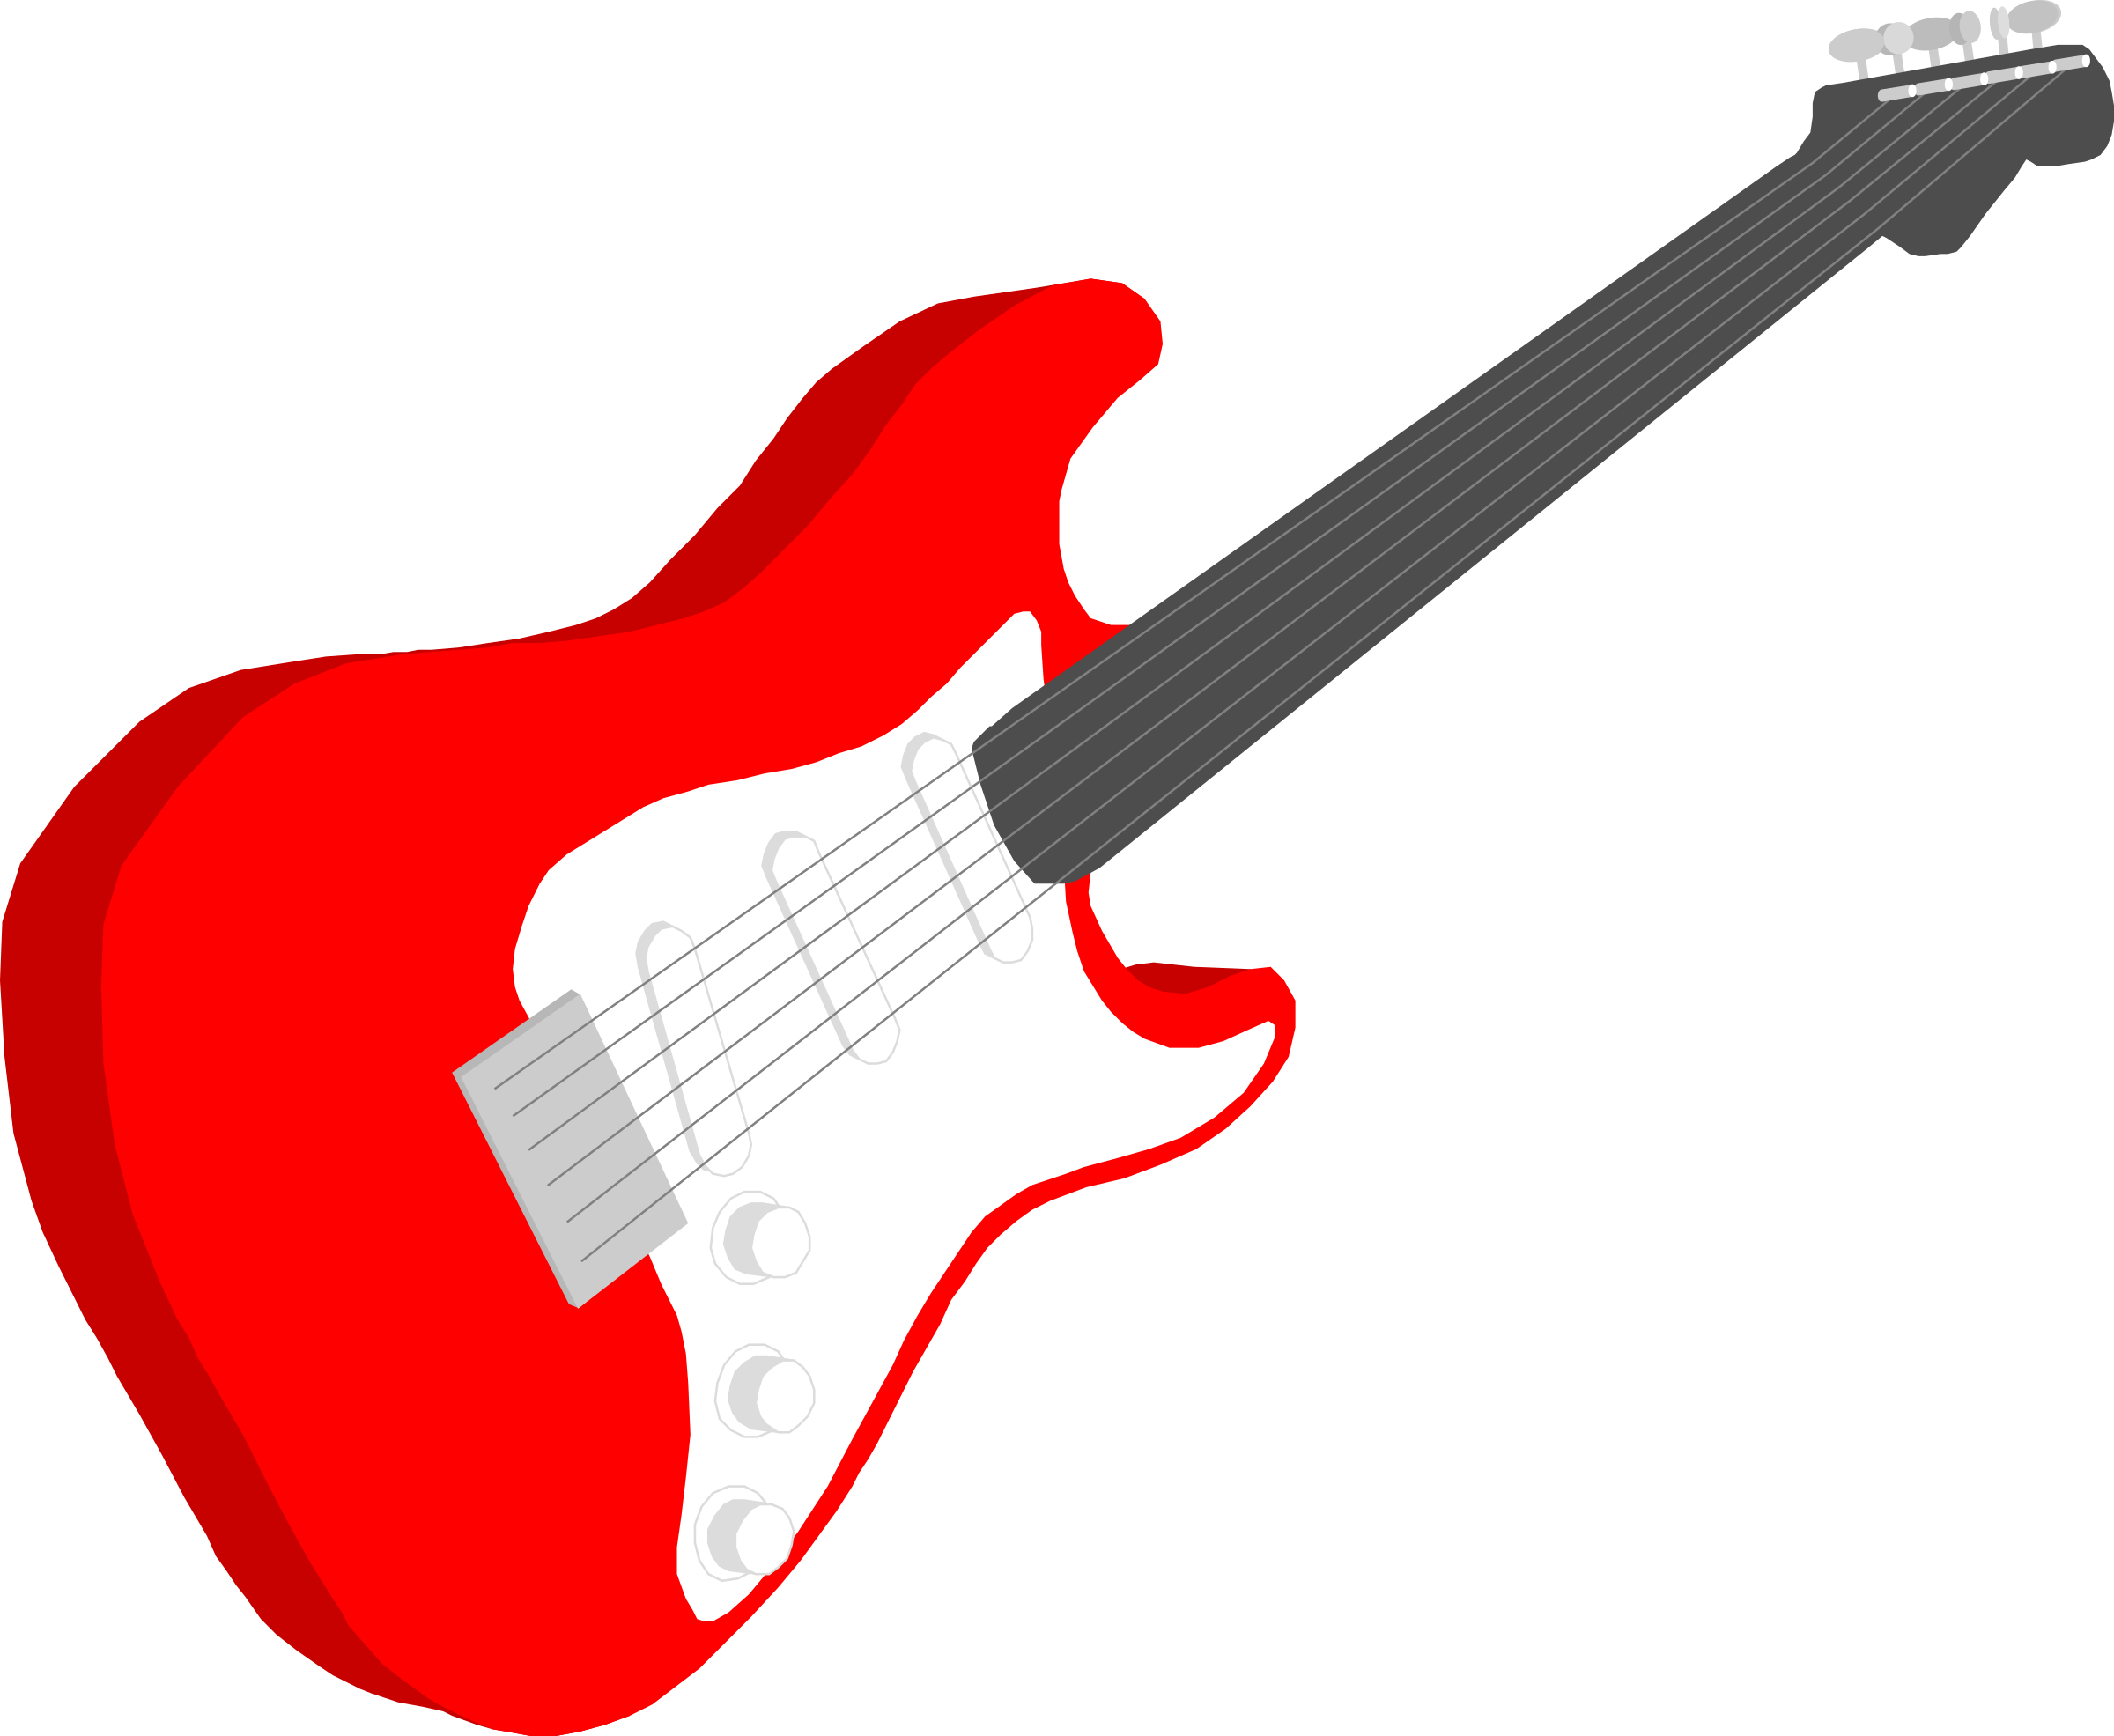 Icons png free and. Clipart guitar symbol